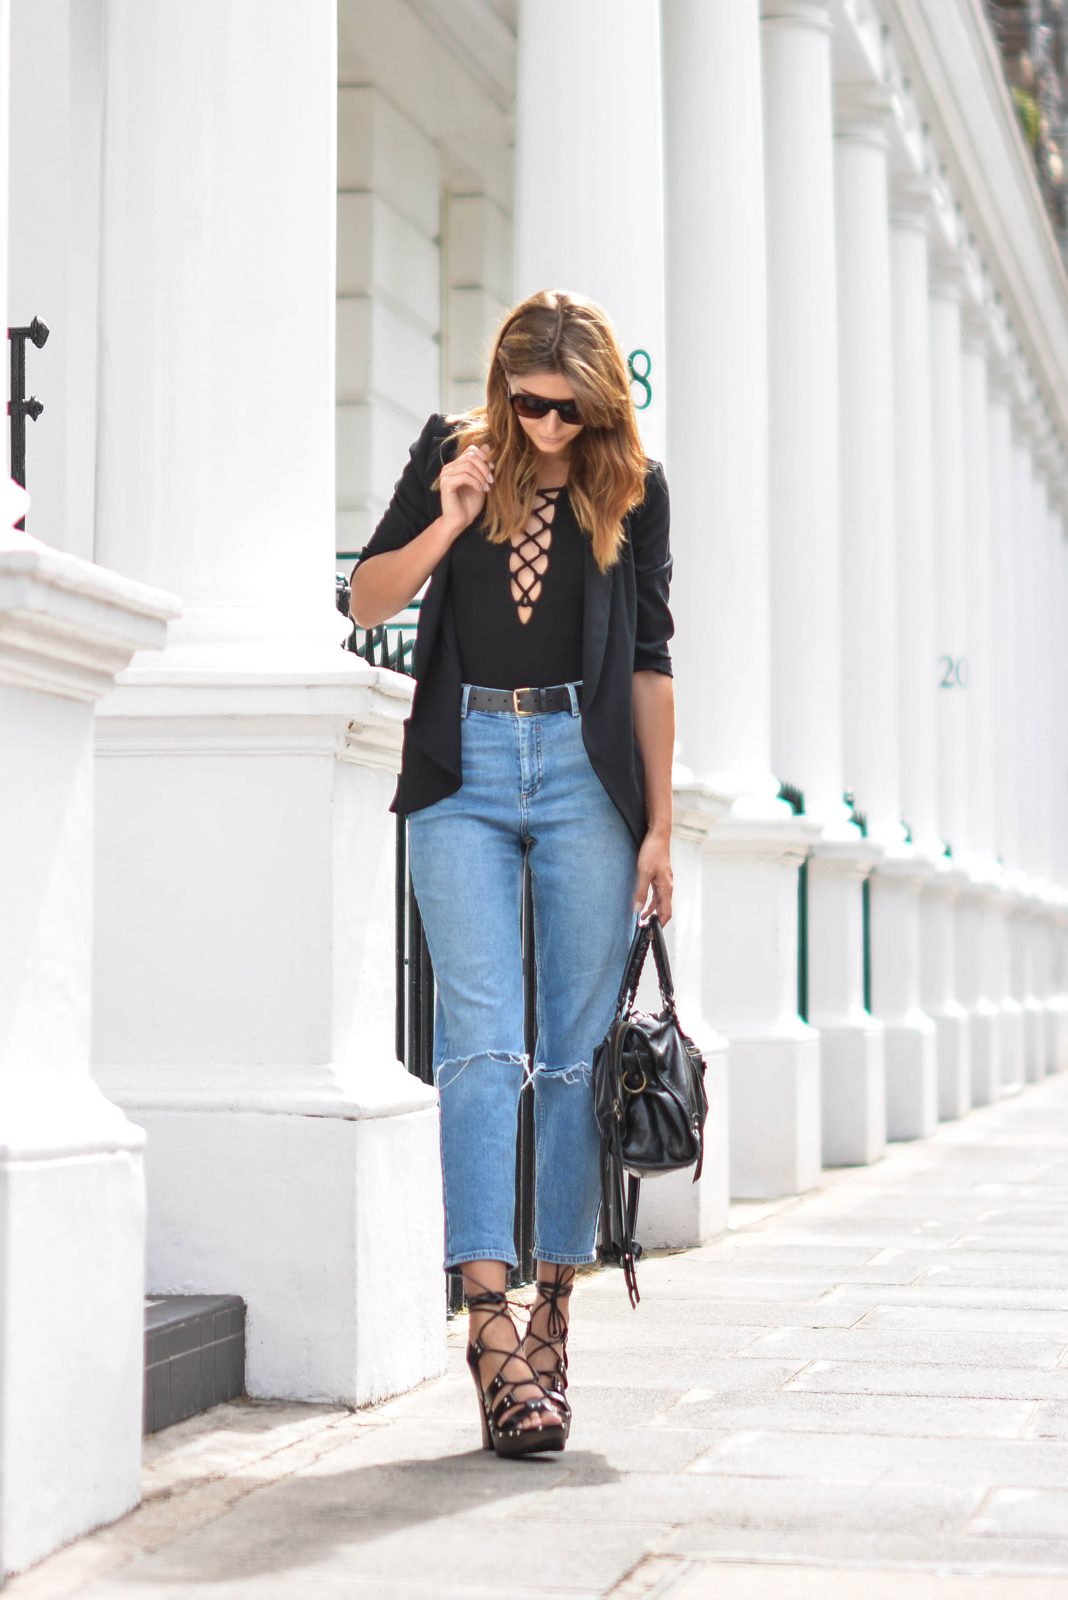 EJSTYLE wears Lace up black top bodysuit, Black blazer, girlfreind jeans, black belt, Flat top square sunglasses, Balenciaga city bag black, asos turn back time wooden platform lace up sandals heels, OOTD